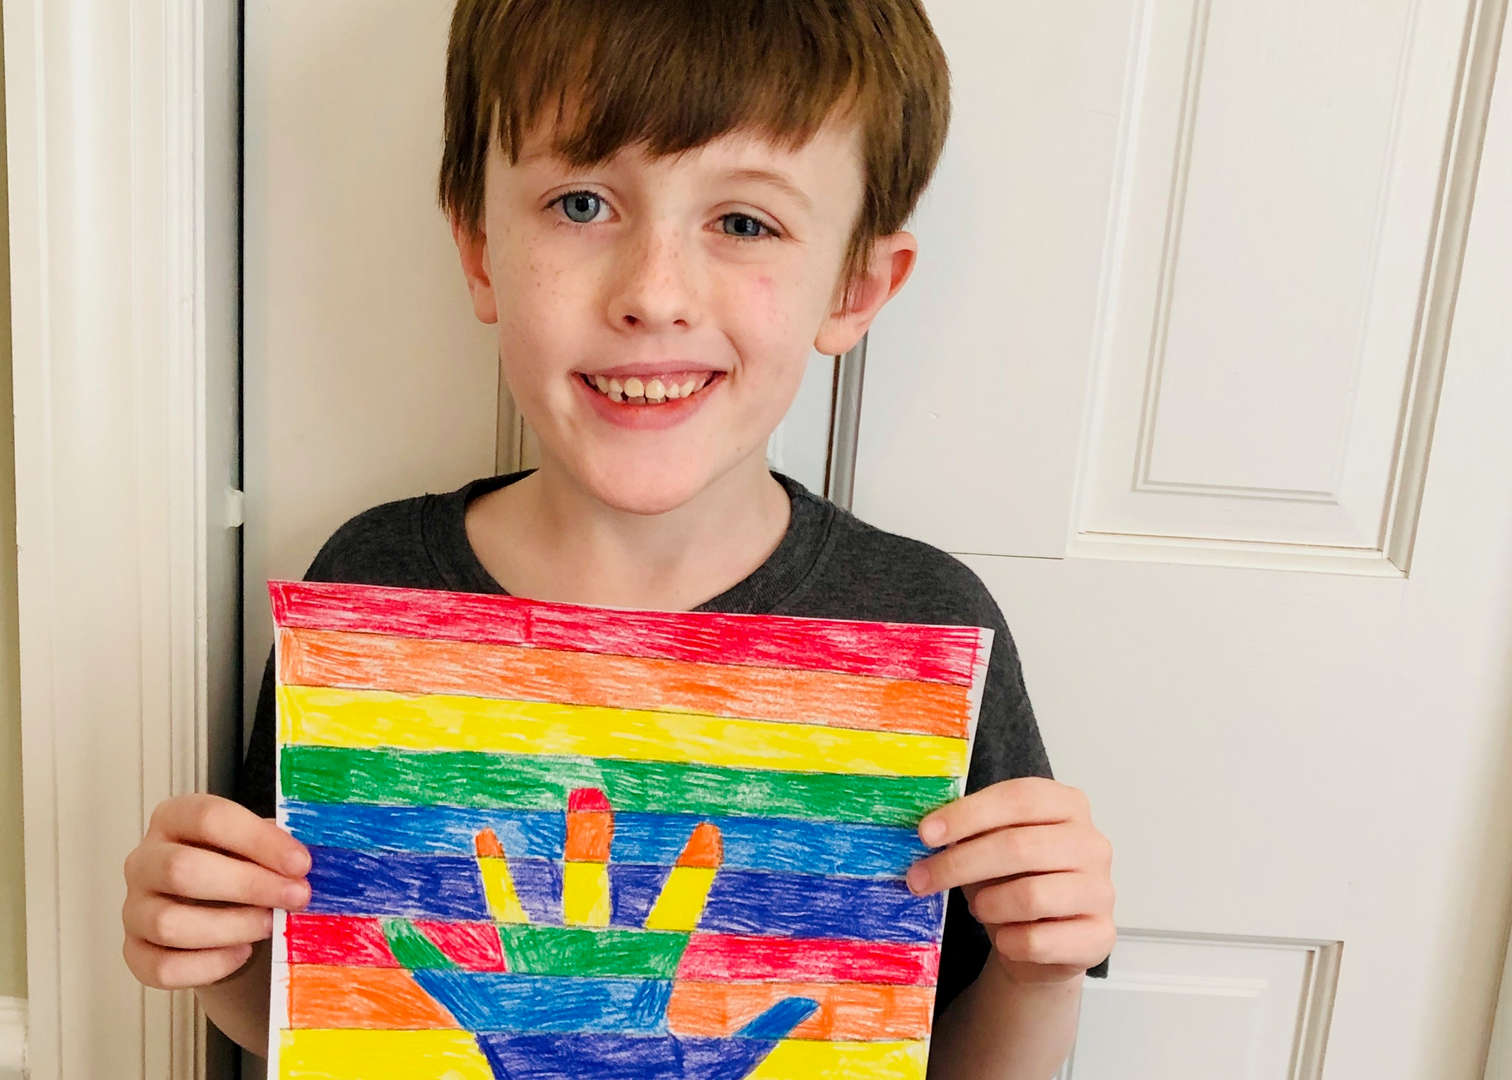 Male student with rainbow hand artwork